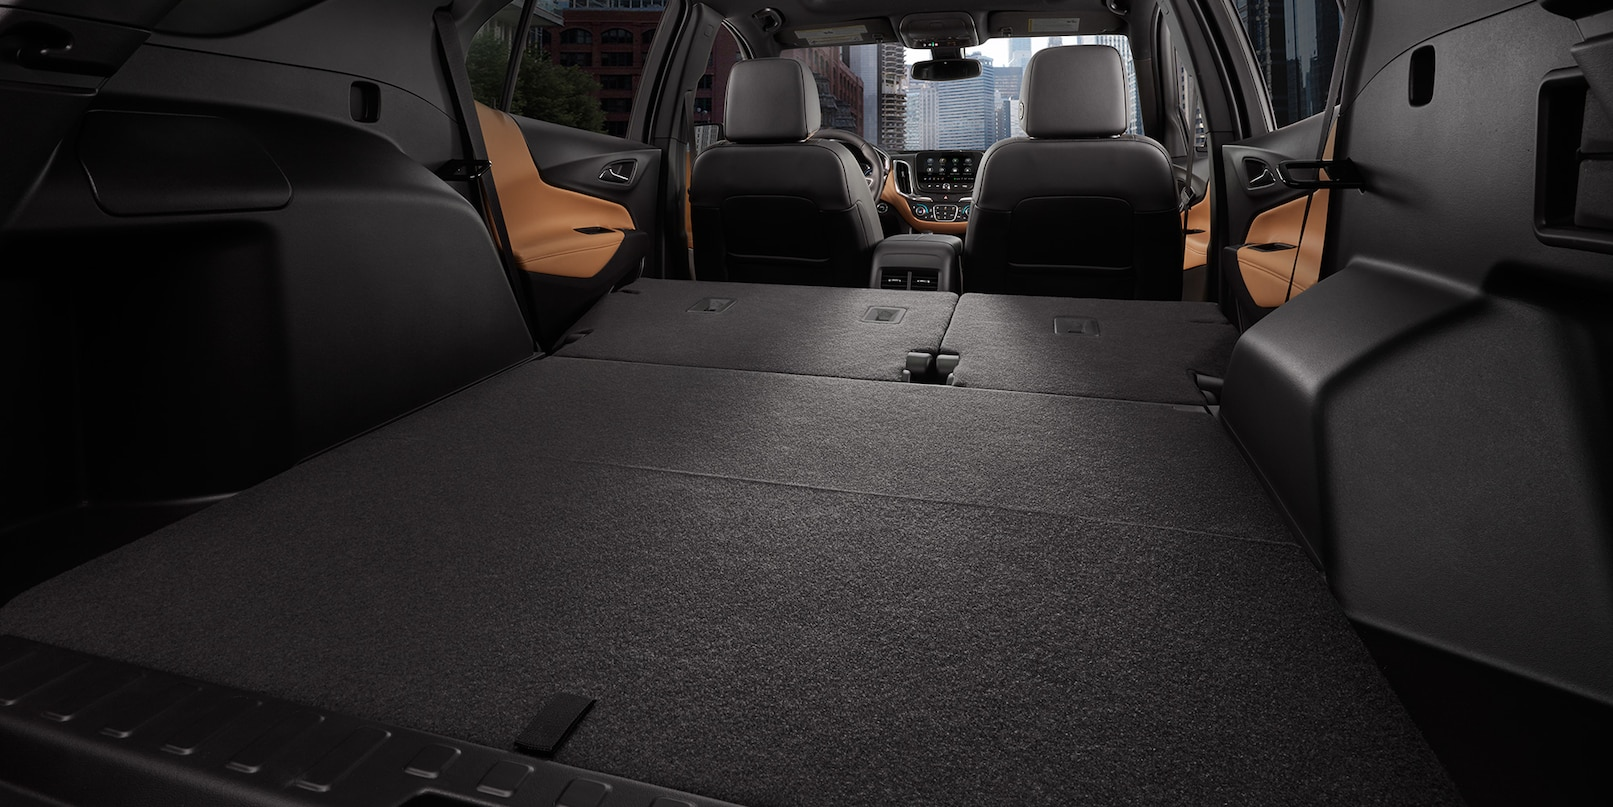 Commodious Cabin of the 2019 Equinox